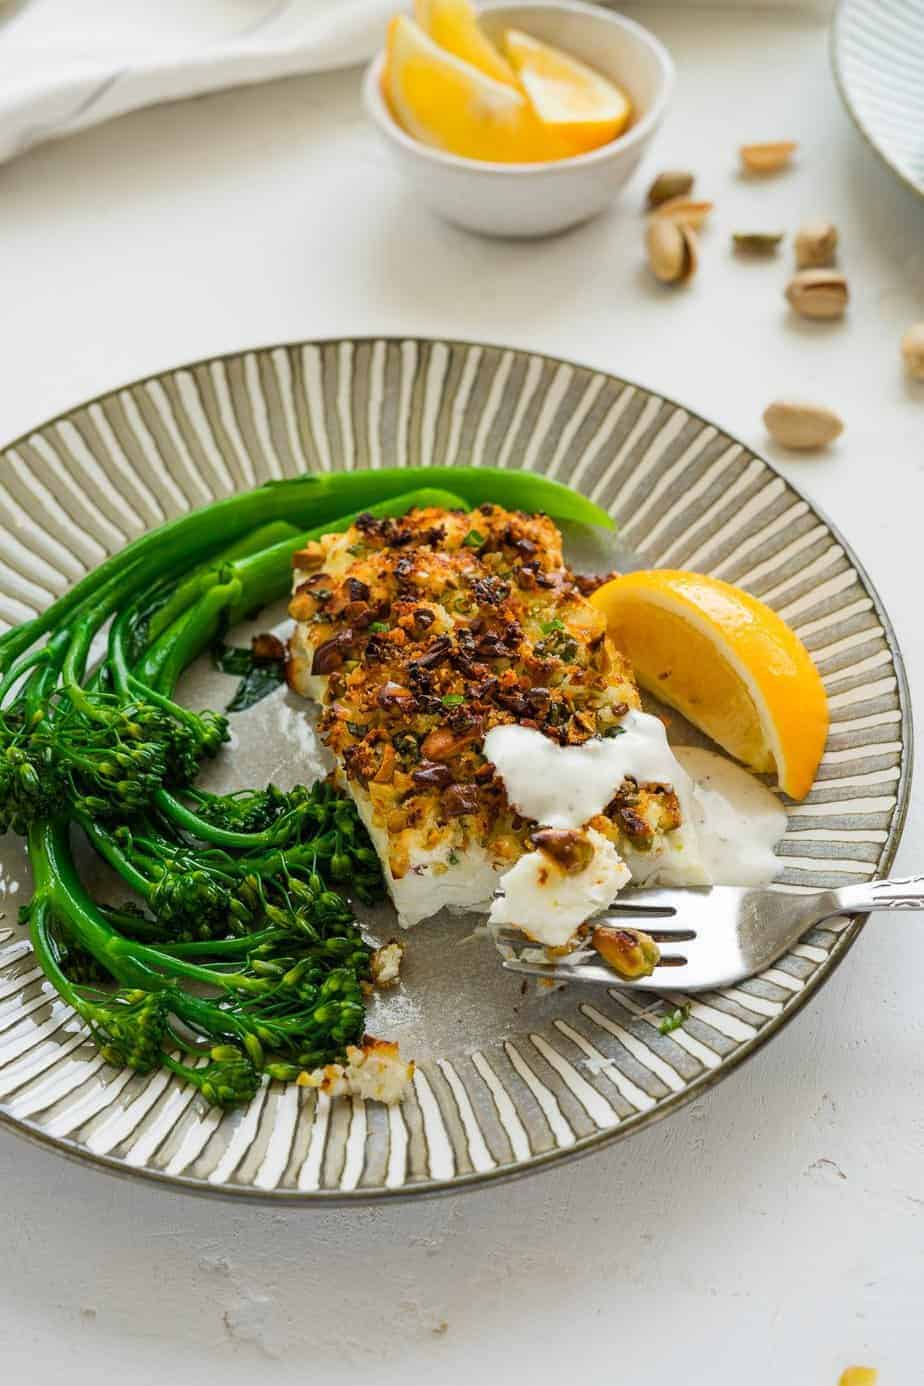 Perfectly cooked fish serve with a side of broccolini and lemon wedges.